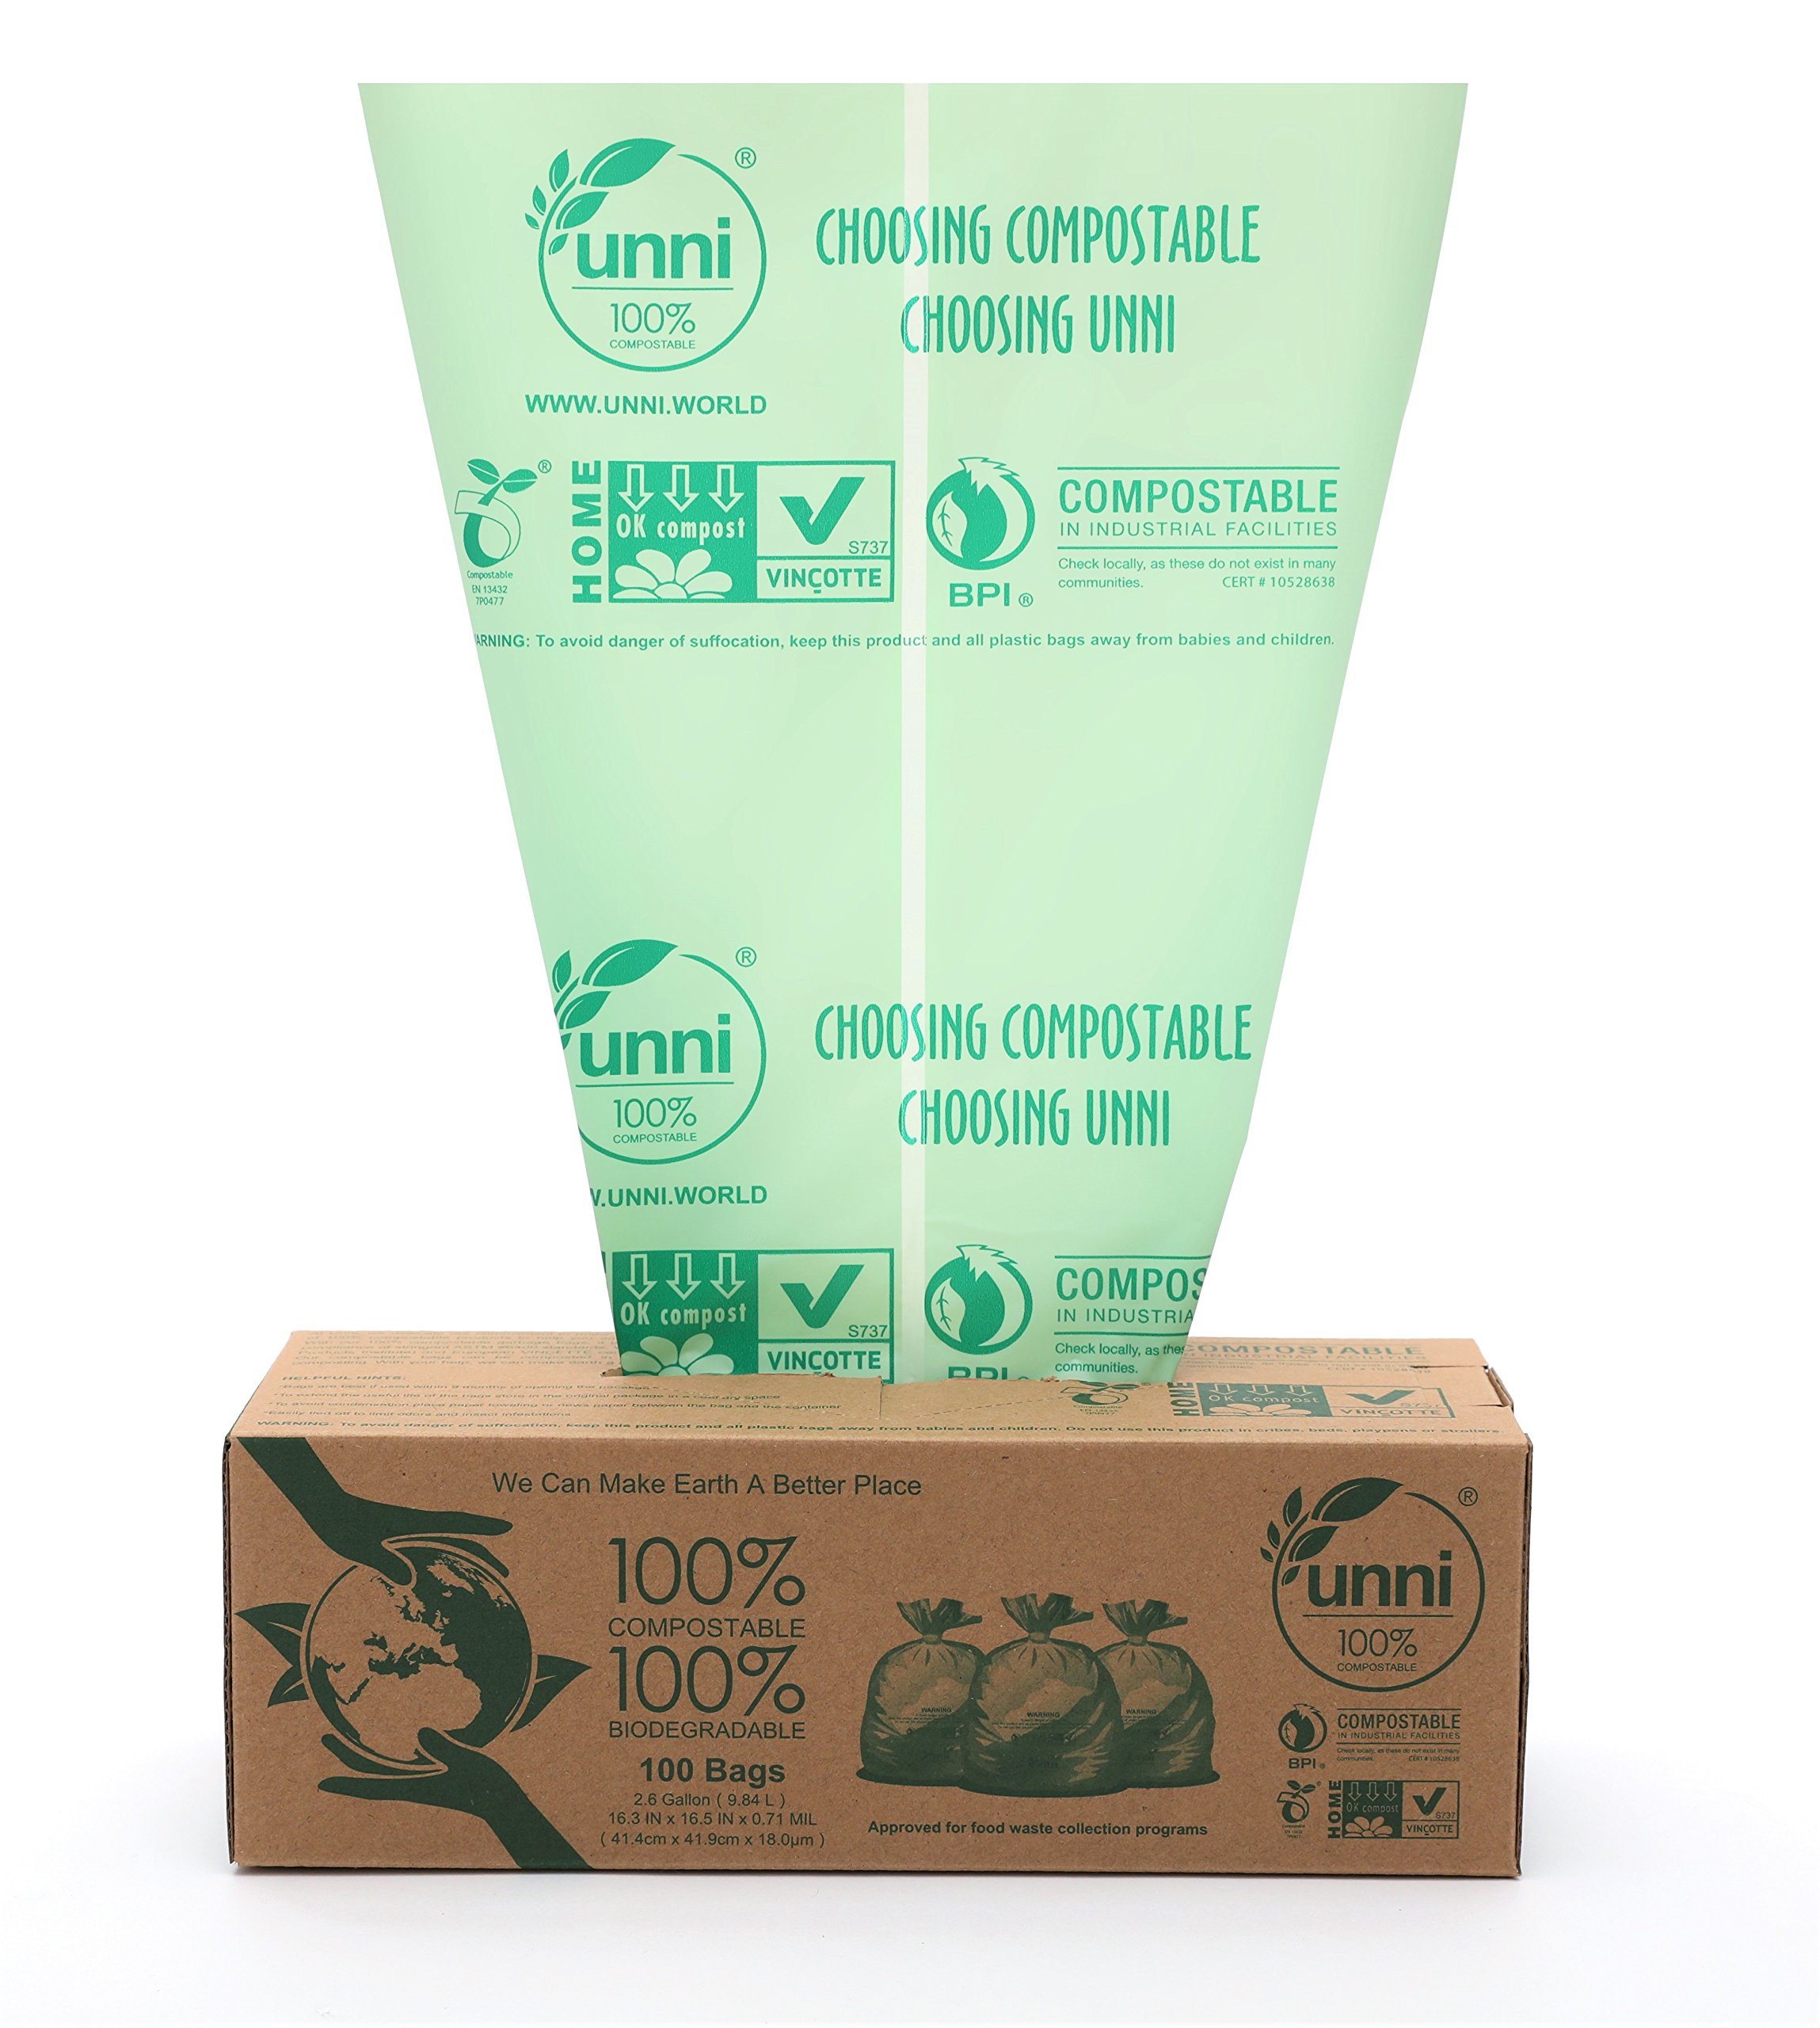 UNNI ASTM6400 Certified 100% Compostable Bags, 2.6 Gallon, 100 count, Extra Thick 0.71 Mils, Small Kitchen Trash Bag,Biodegradable Food Scraps Yard Waste Bag, US BPI and European VINCOTTE Certificated